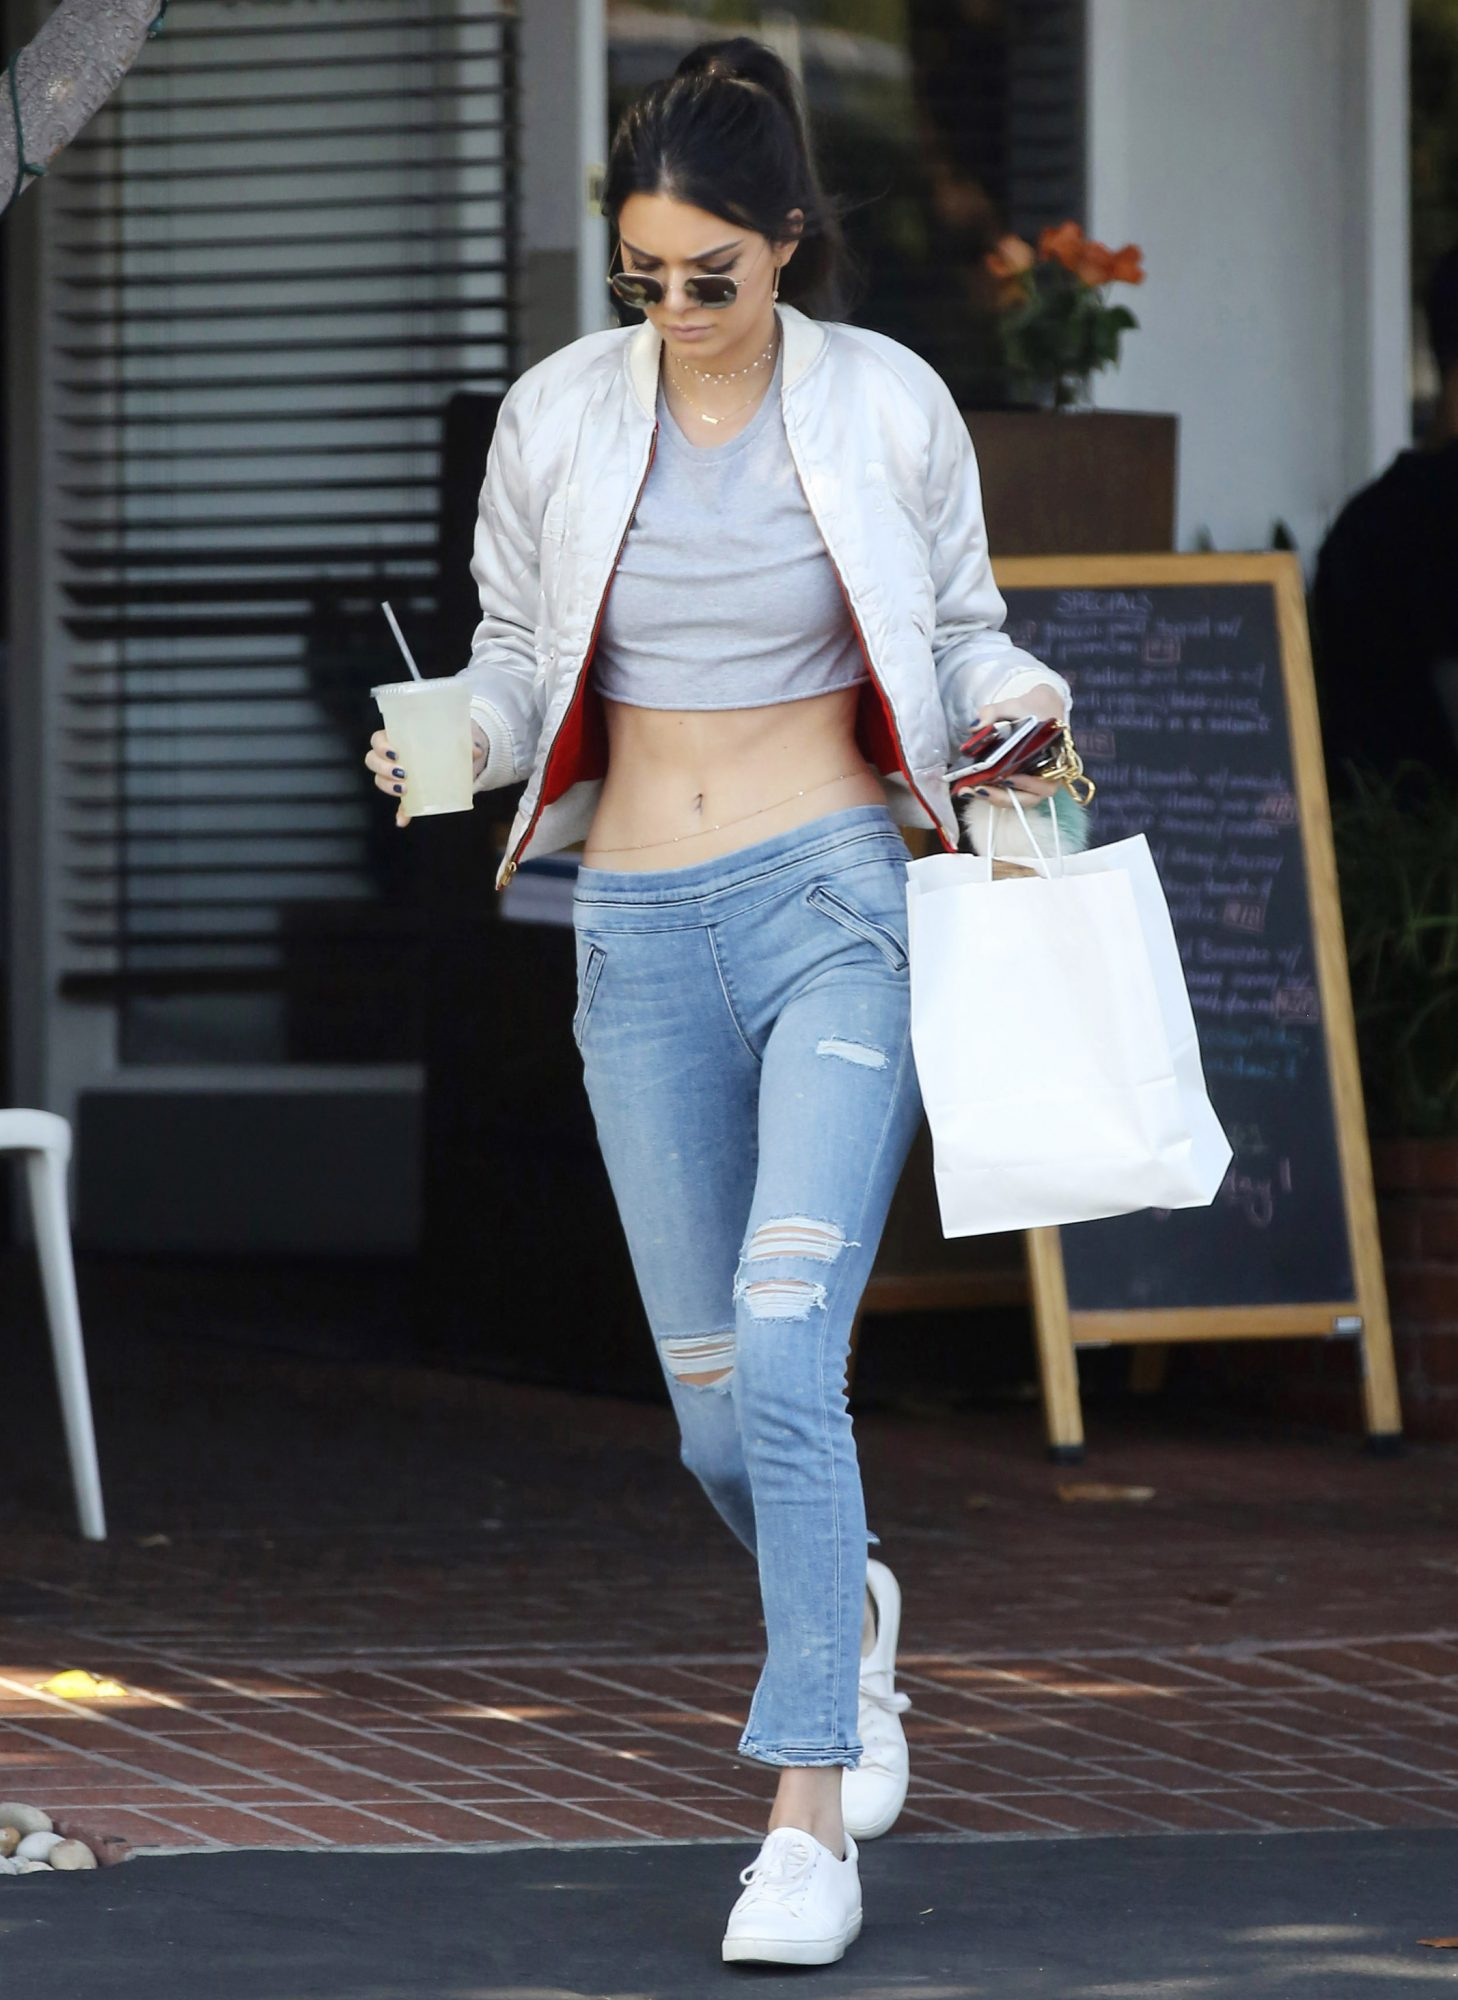 Kendall Jenner Hits the L.A. Streets in a Crop Top and Belly Chain